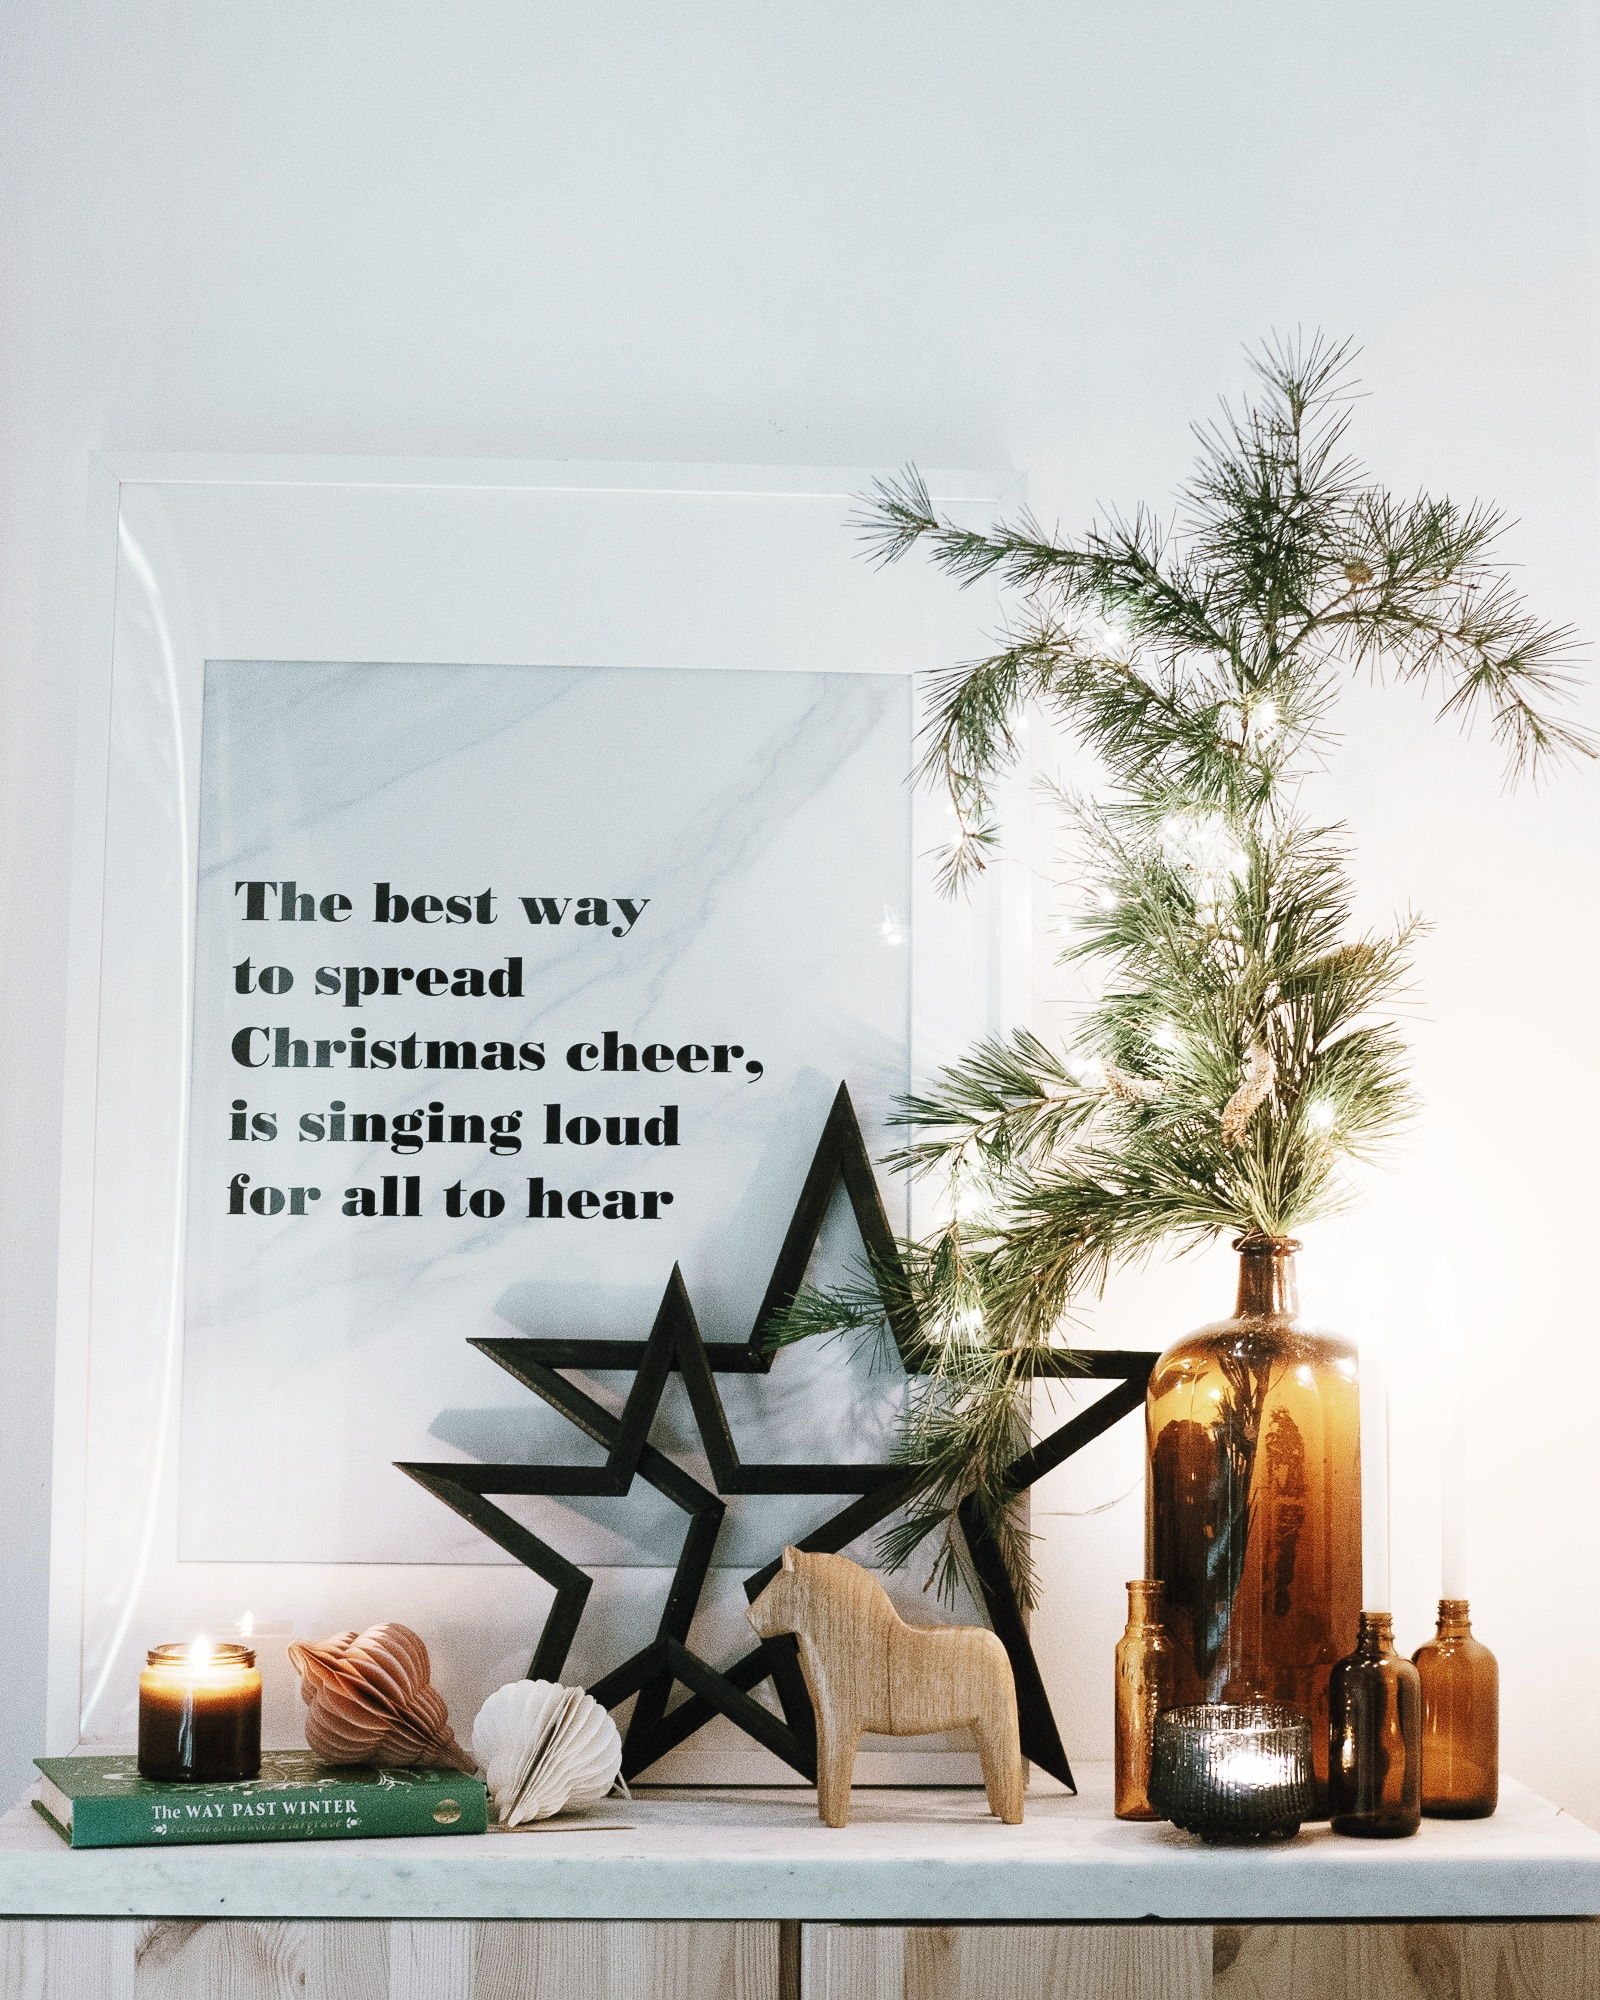 Deck the Halls! Get Your Home Holiday-Ready with 15 Festive Home Décor Ideas